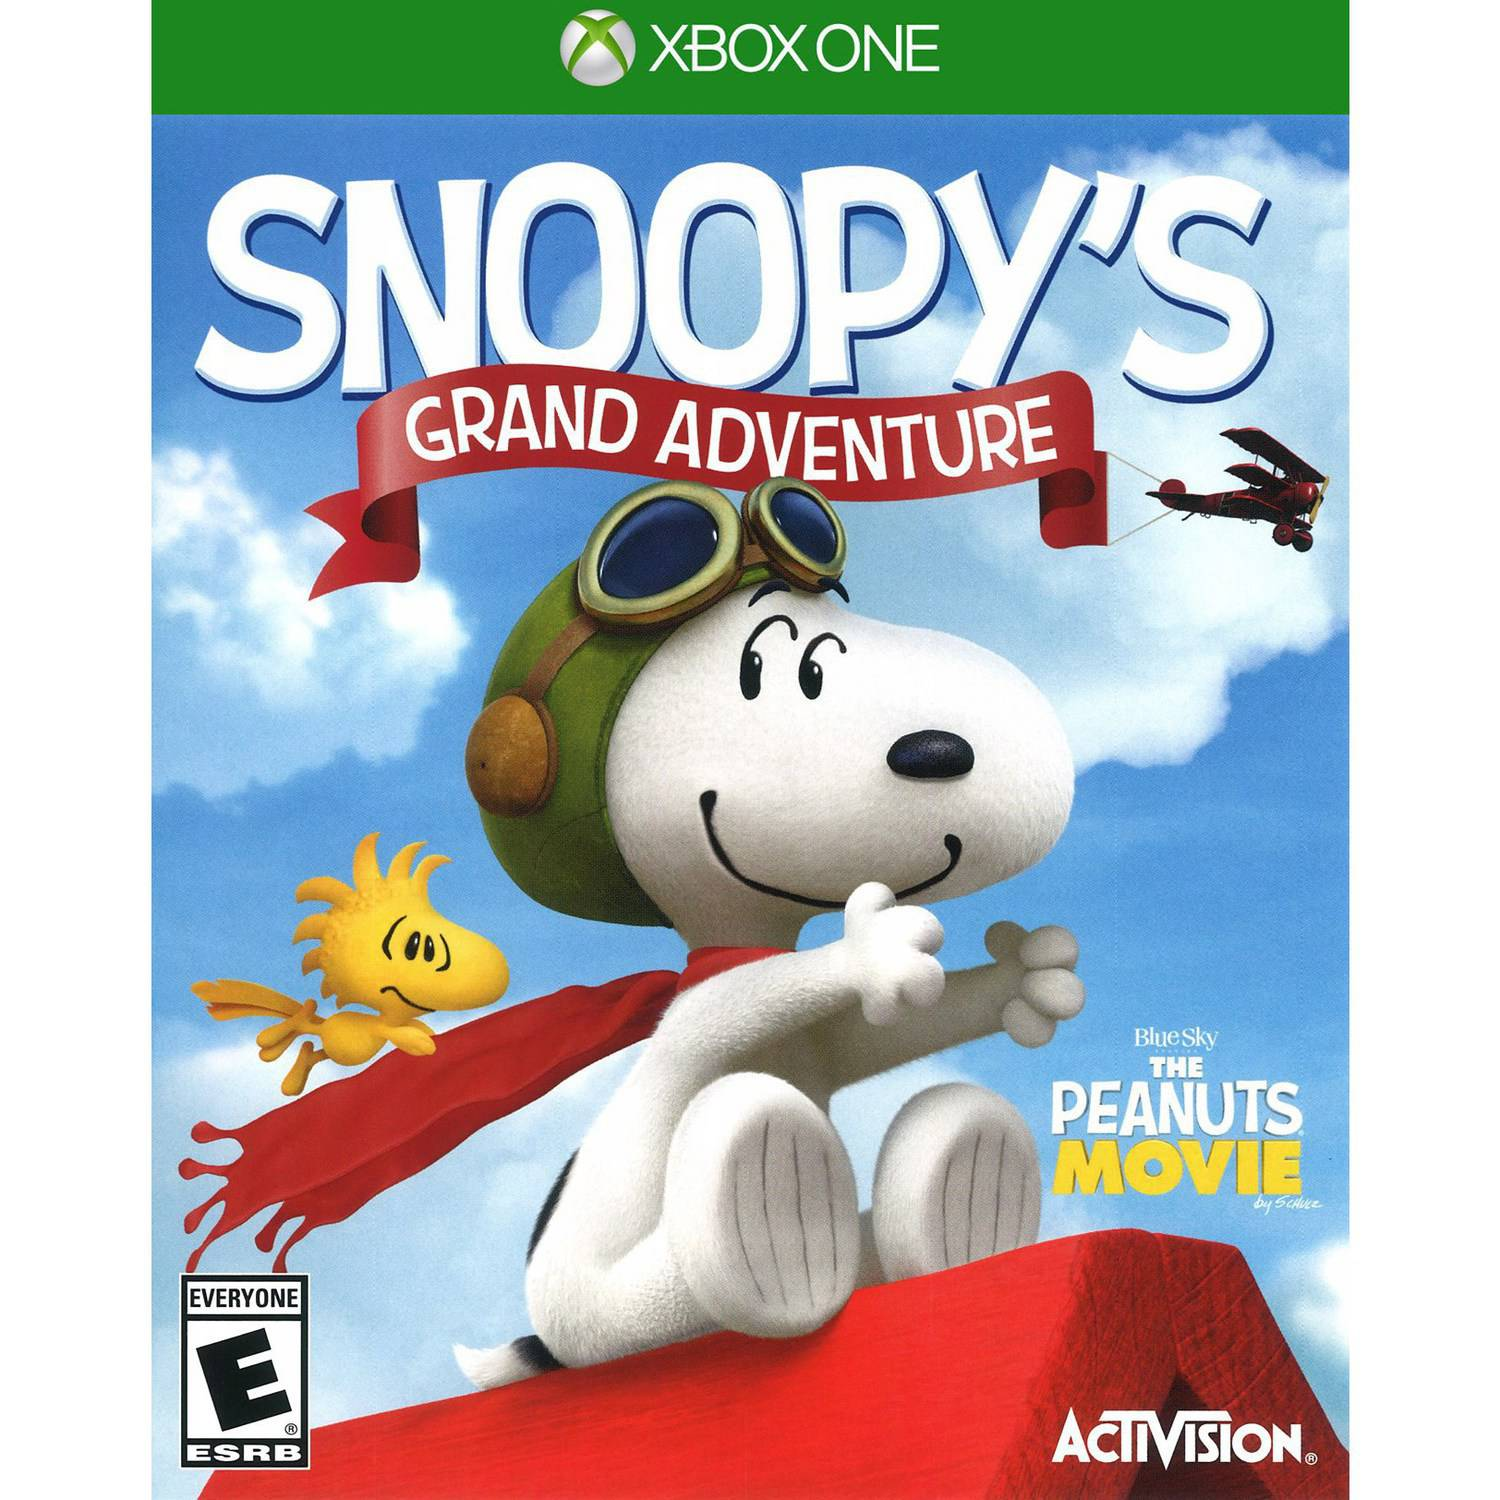 Peanuts Movie Snoopys Adventure (Xbox One) - Pre-Owned